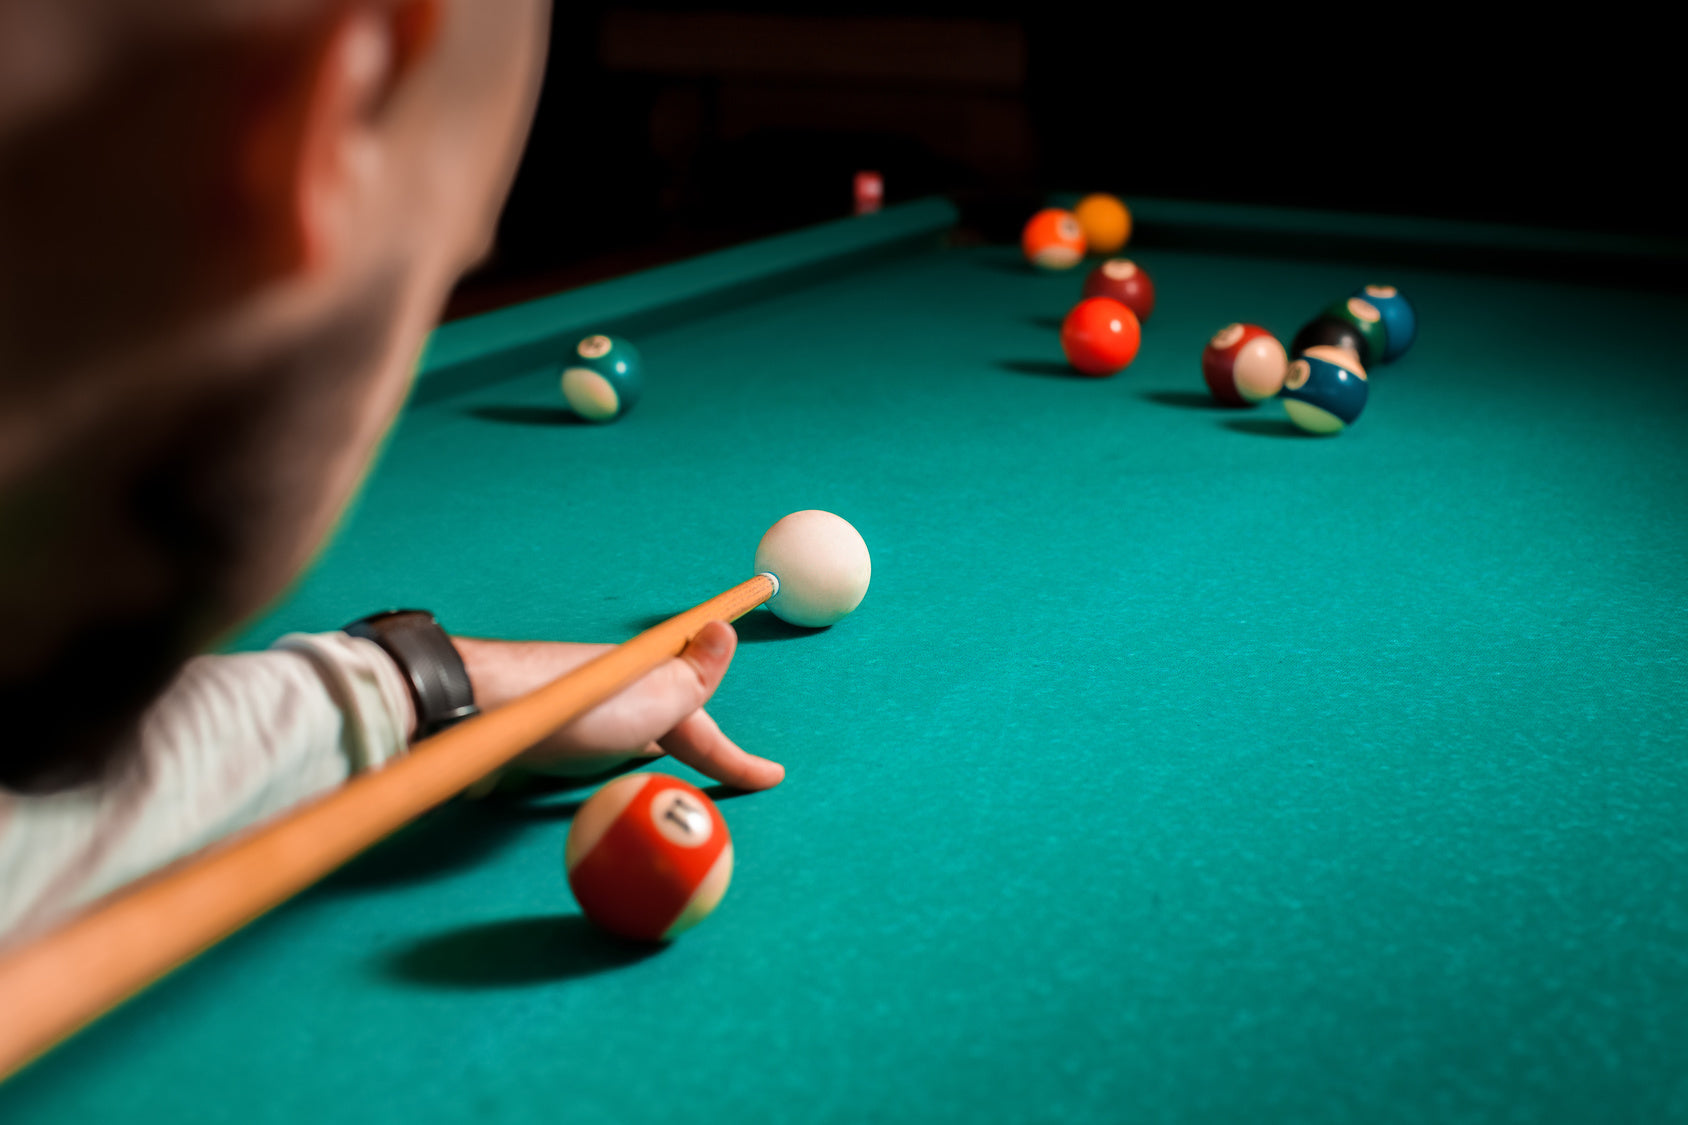 Playing Pool 365 Days a Year